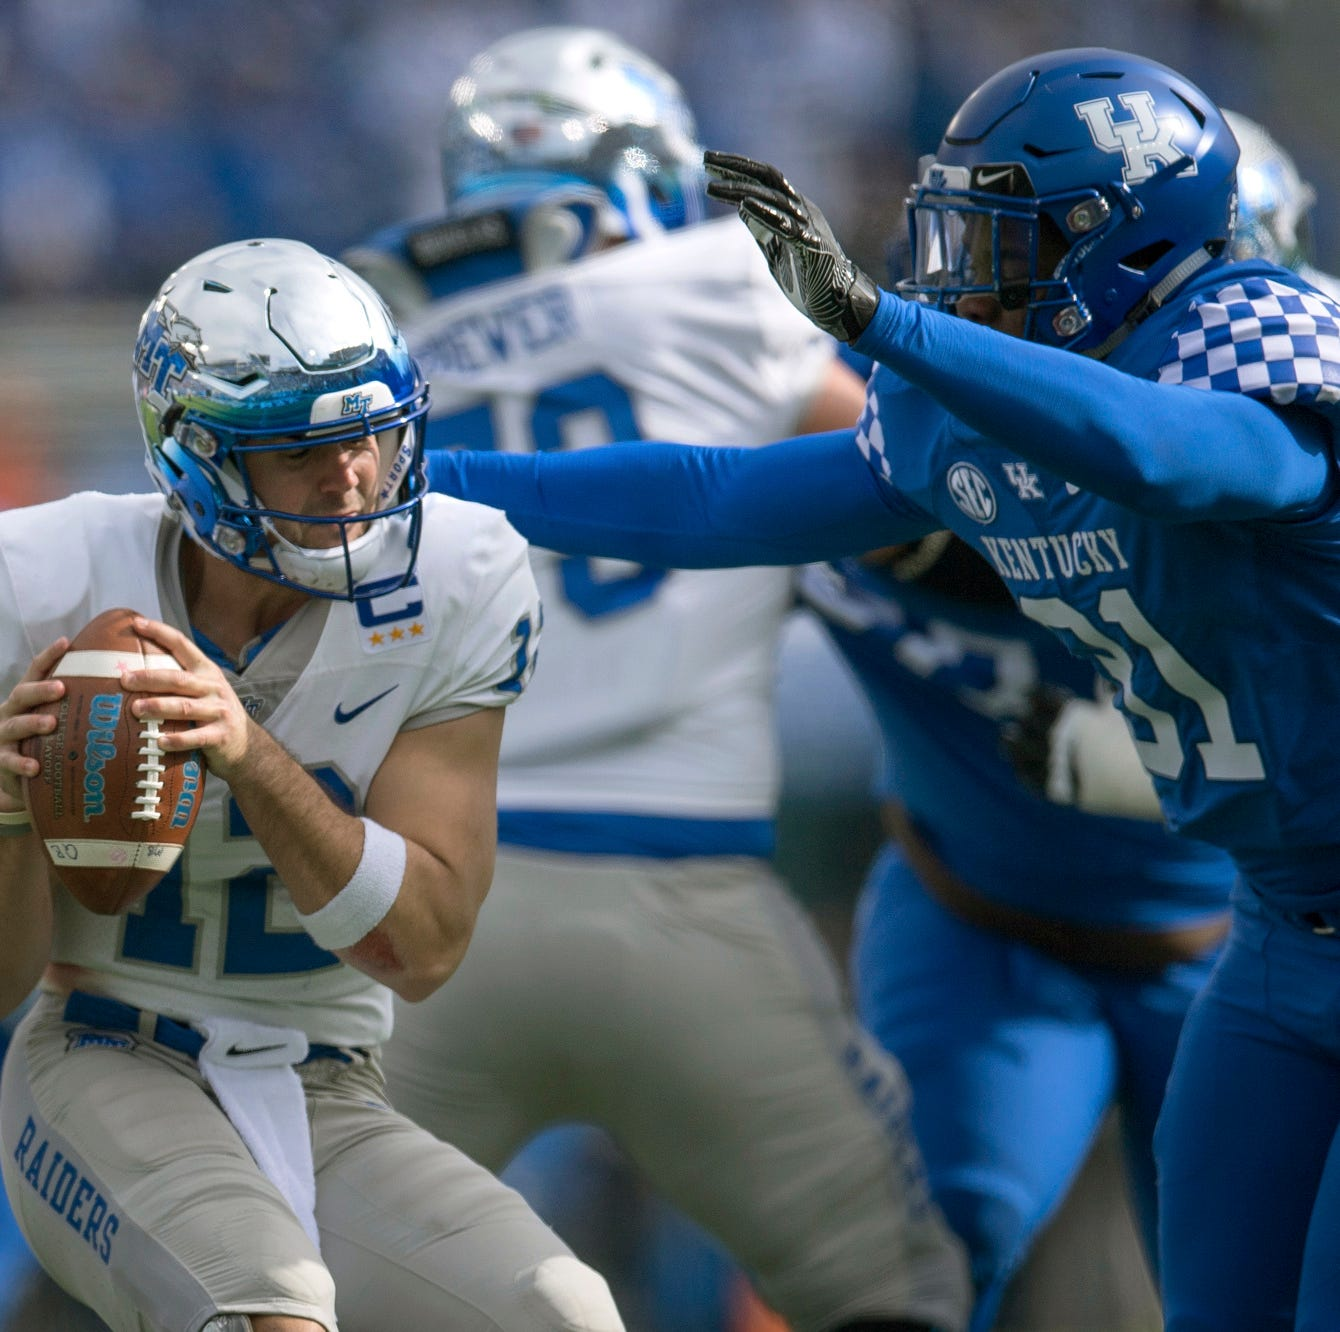 MTSU football optimistic heading into UAB game after loss to Kentucky